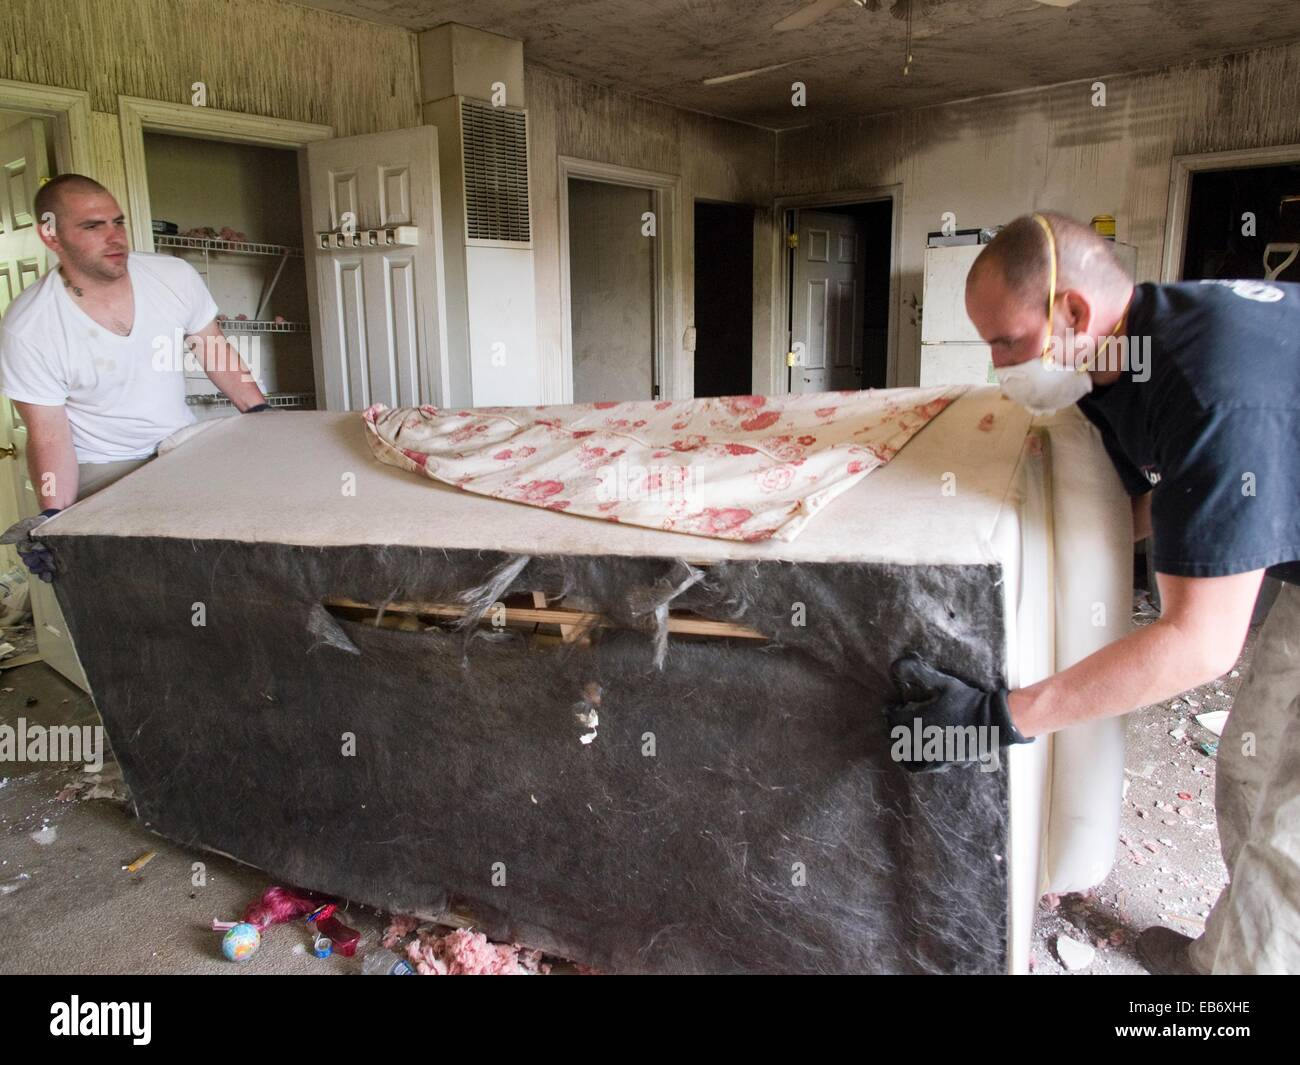 Two men remove items from a foreclosed house in Woonsocket, Rhode Island, United States - Stock Image